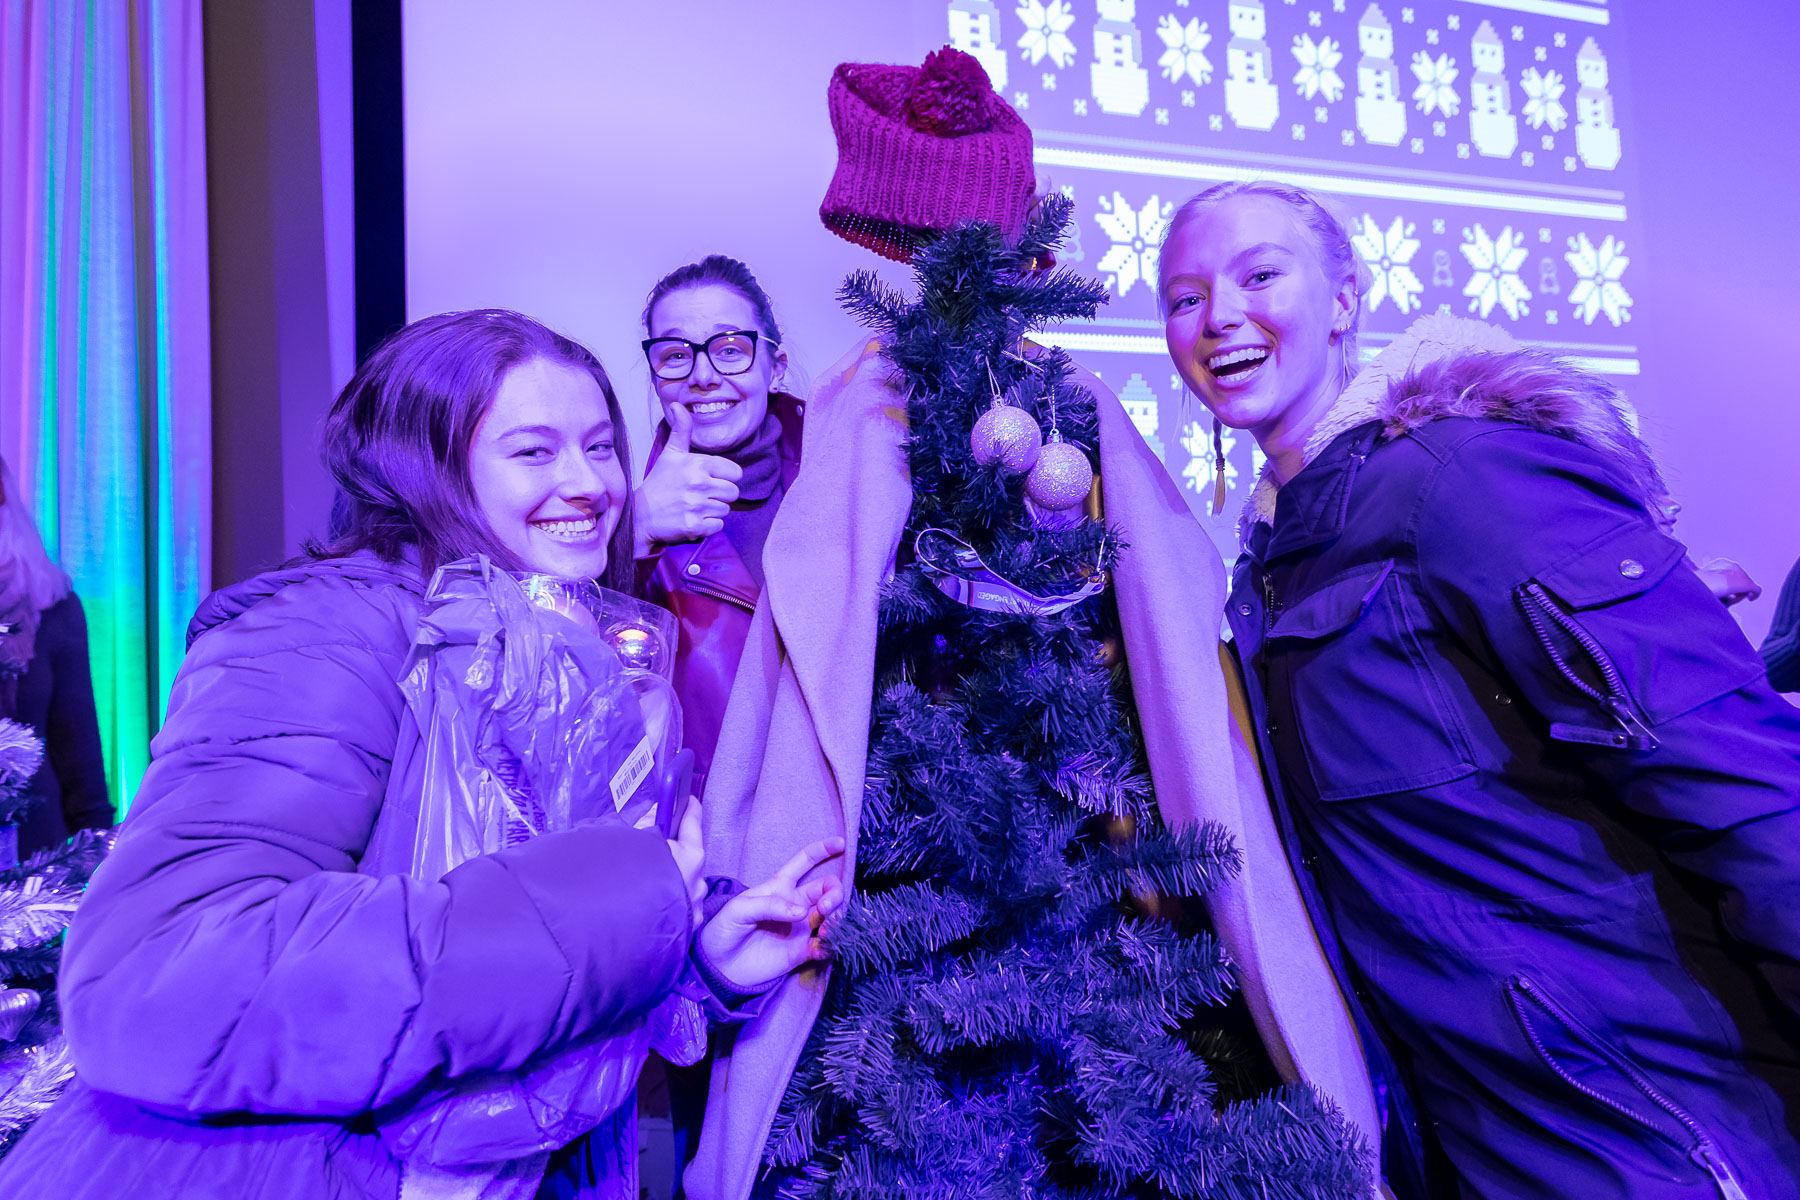 Students try their best to decorate a Christmas tree for the tree decorating contest at the Ugly Sweater Party. (DePaul University/Jeff Carrion)